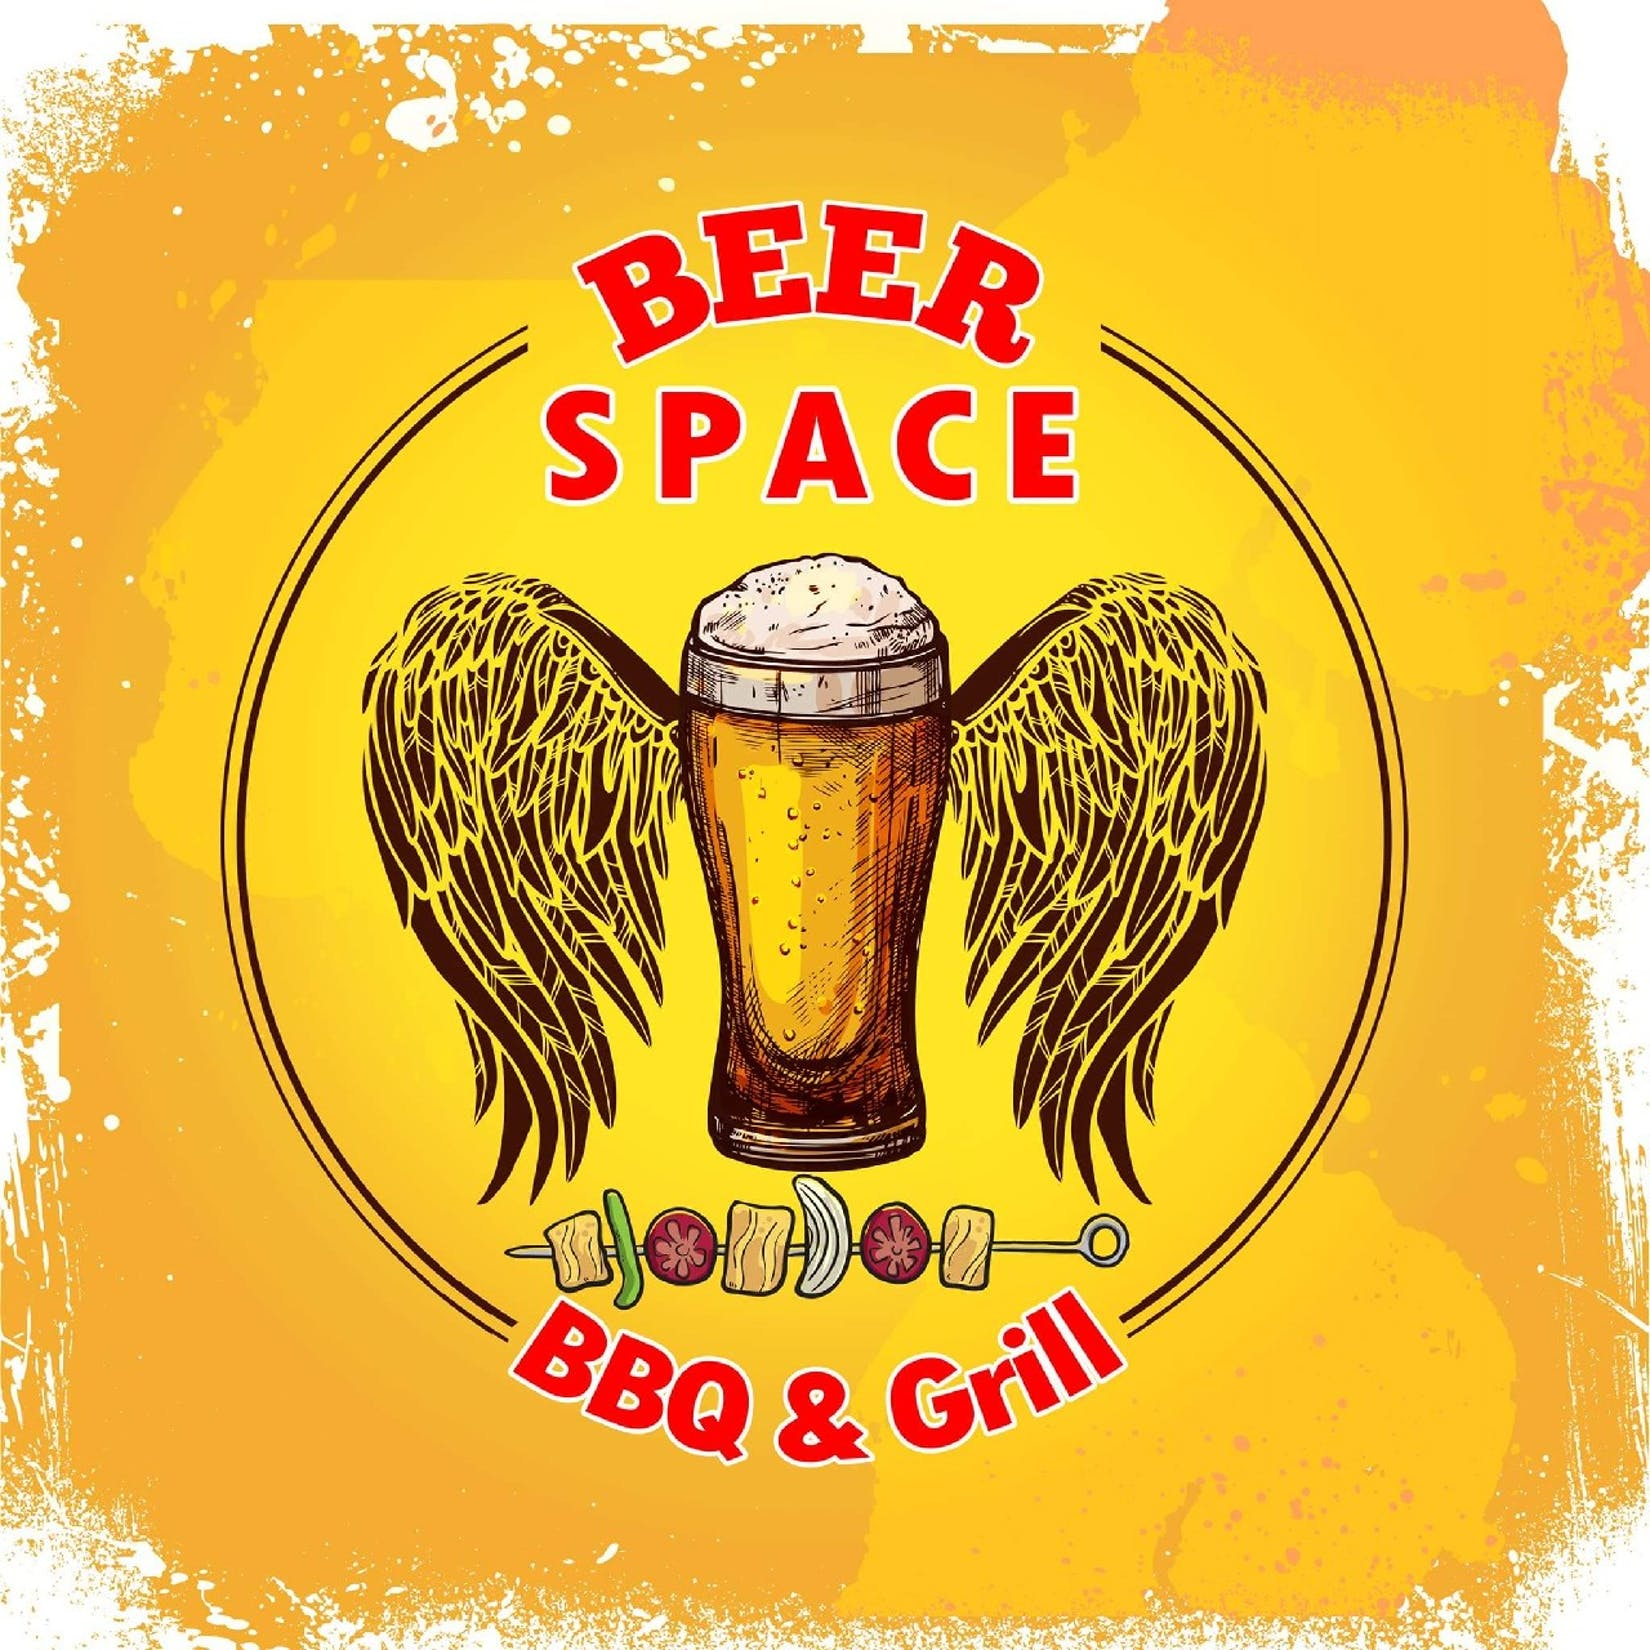 BEER SPACE BBQ & Grill | yathar